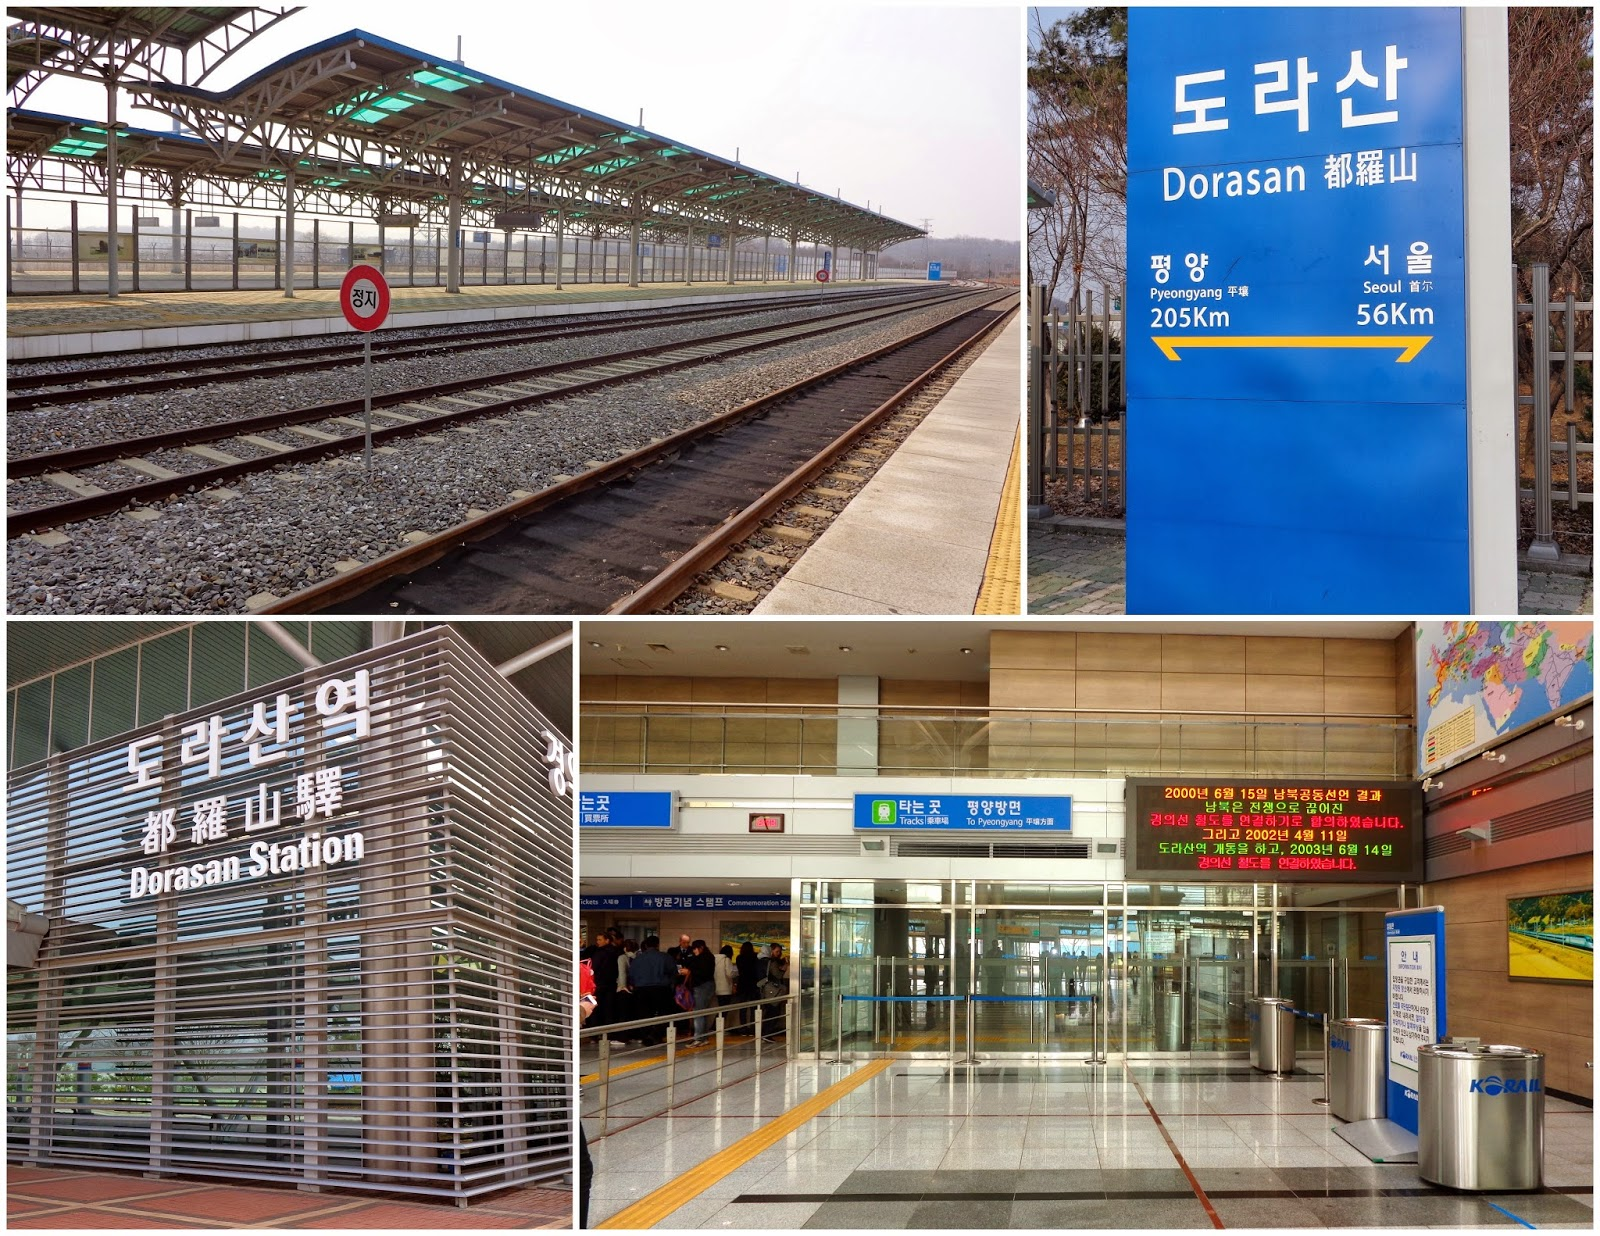 DMZ Dorsan Station Korea